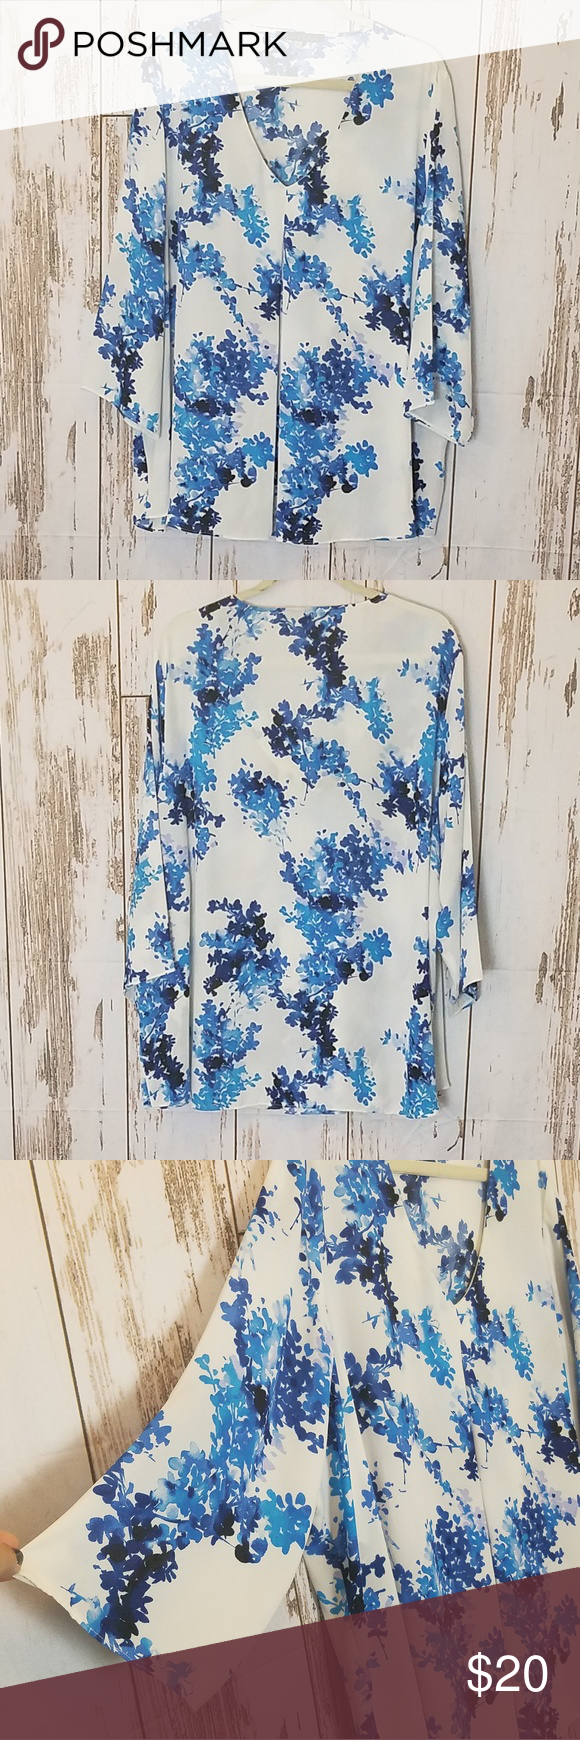 d182d31422314 🌺Sale  Rose   Olive White Blue V Neck Top Size 3X Rose   Olive Plus size  White   Blue V Neck Top. 3 4 Sleeves. Soft and Flowy. Gently used. Size 3X.